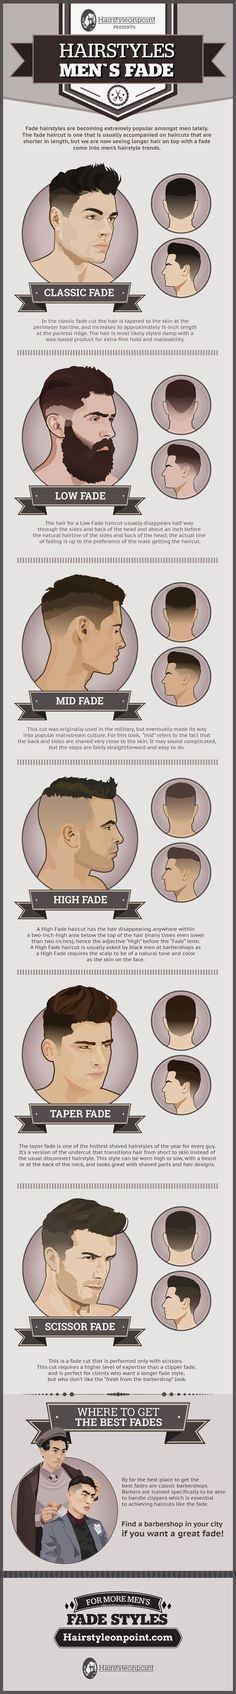 fade hairstyles for men infographic…